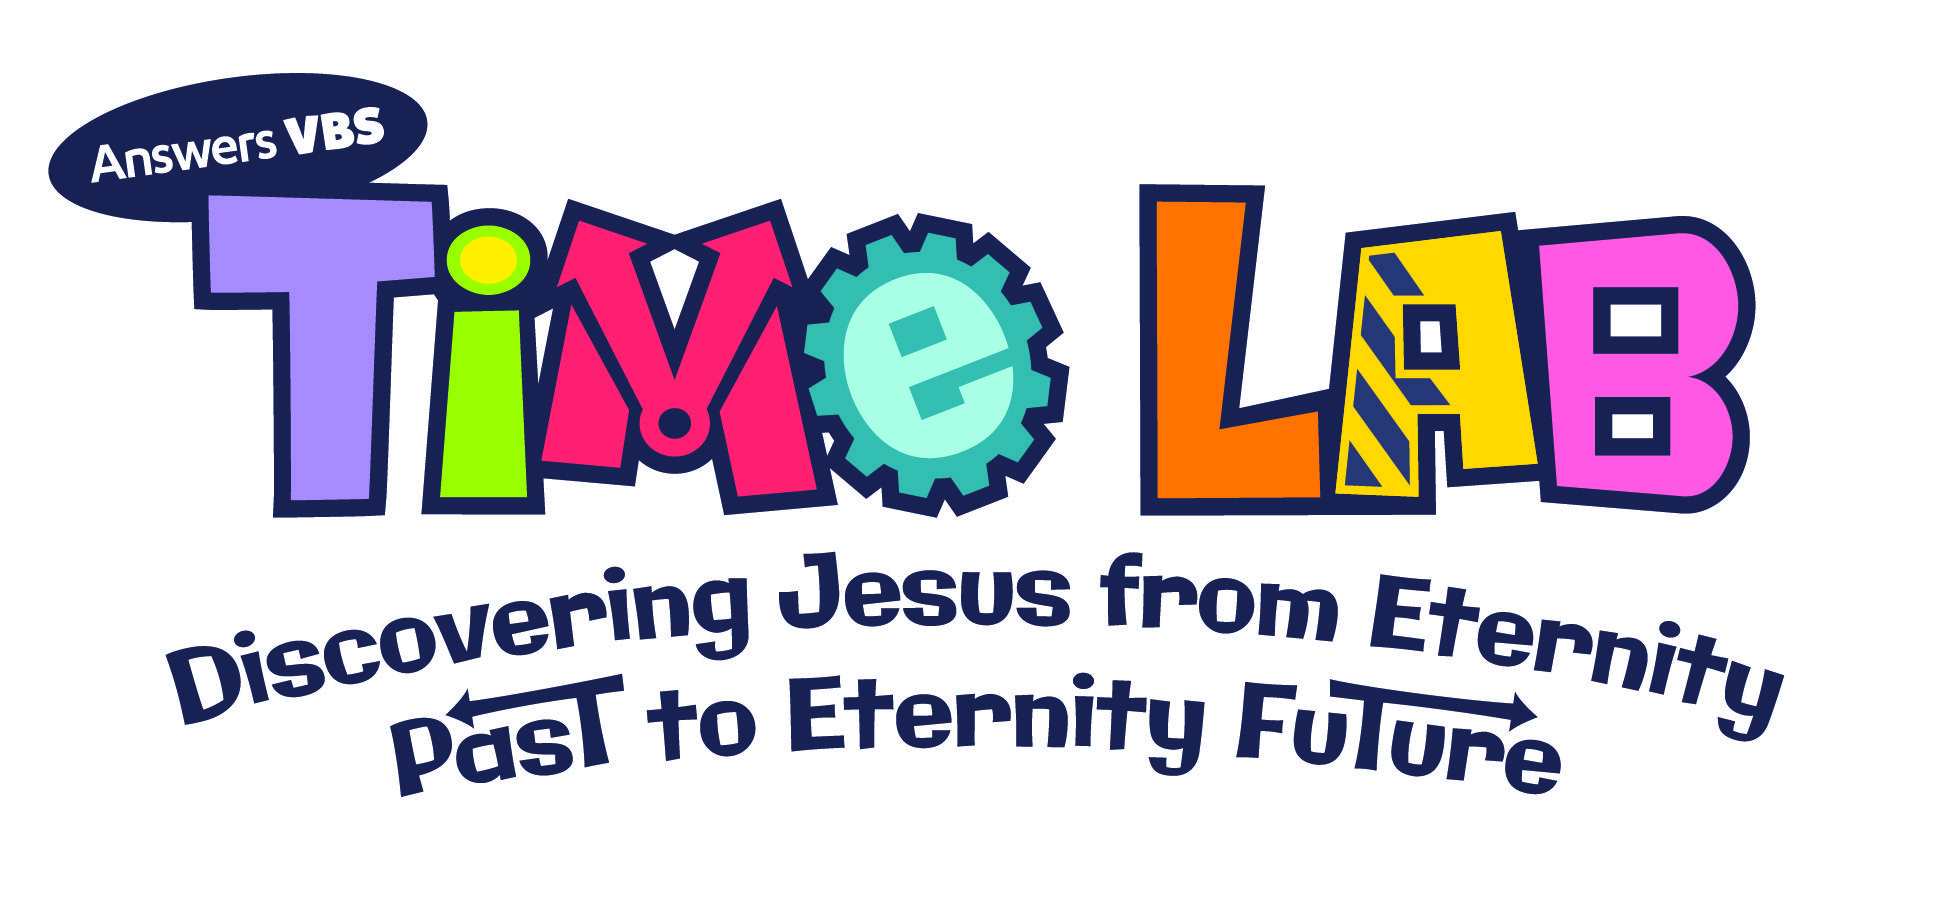 Time lab vacation bible school program for 2018 by answers vbs time lab vacation bible school program for 2018 by answers vbs answersvbs vbs2018 timelab malvernweather Images